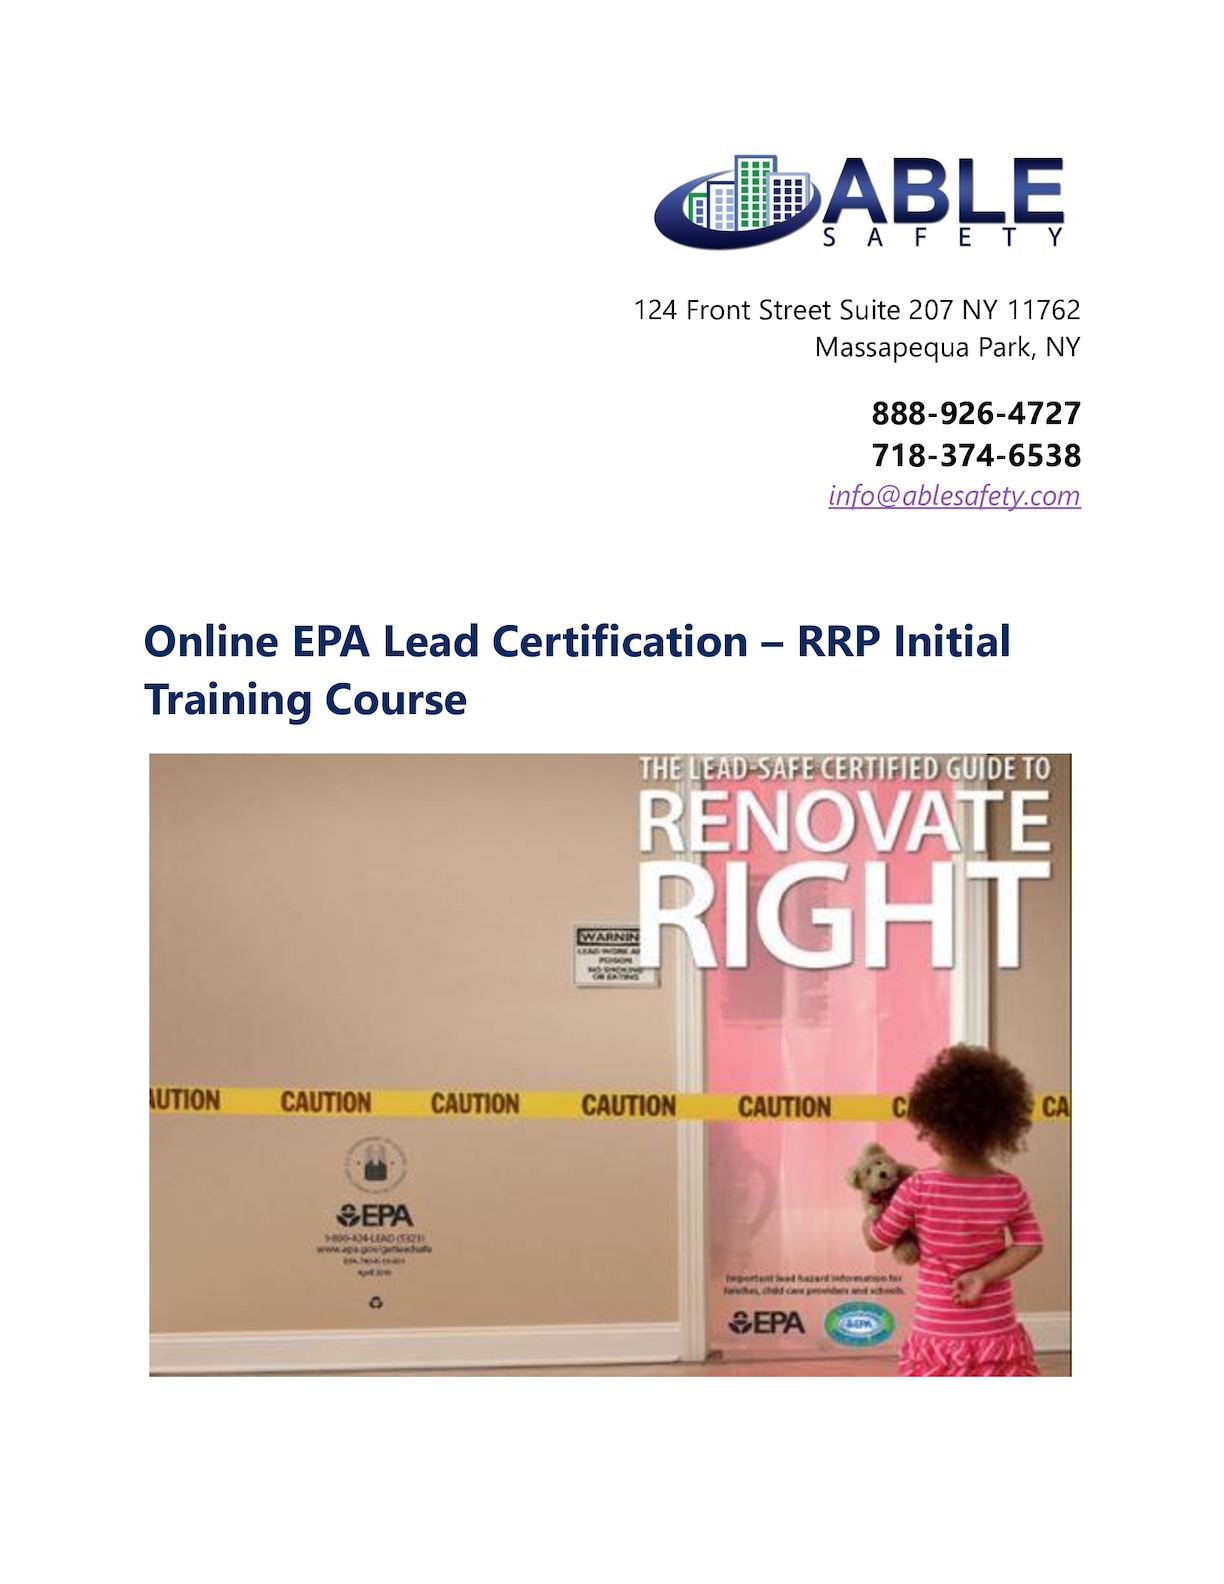 Calamo Online Epa Lead Certification Rrp Initial Training Course